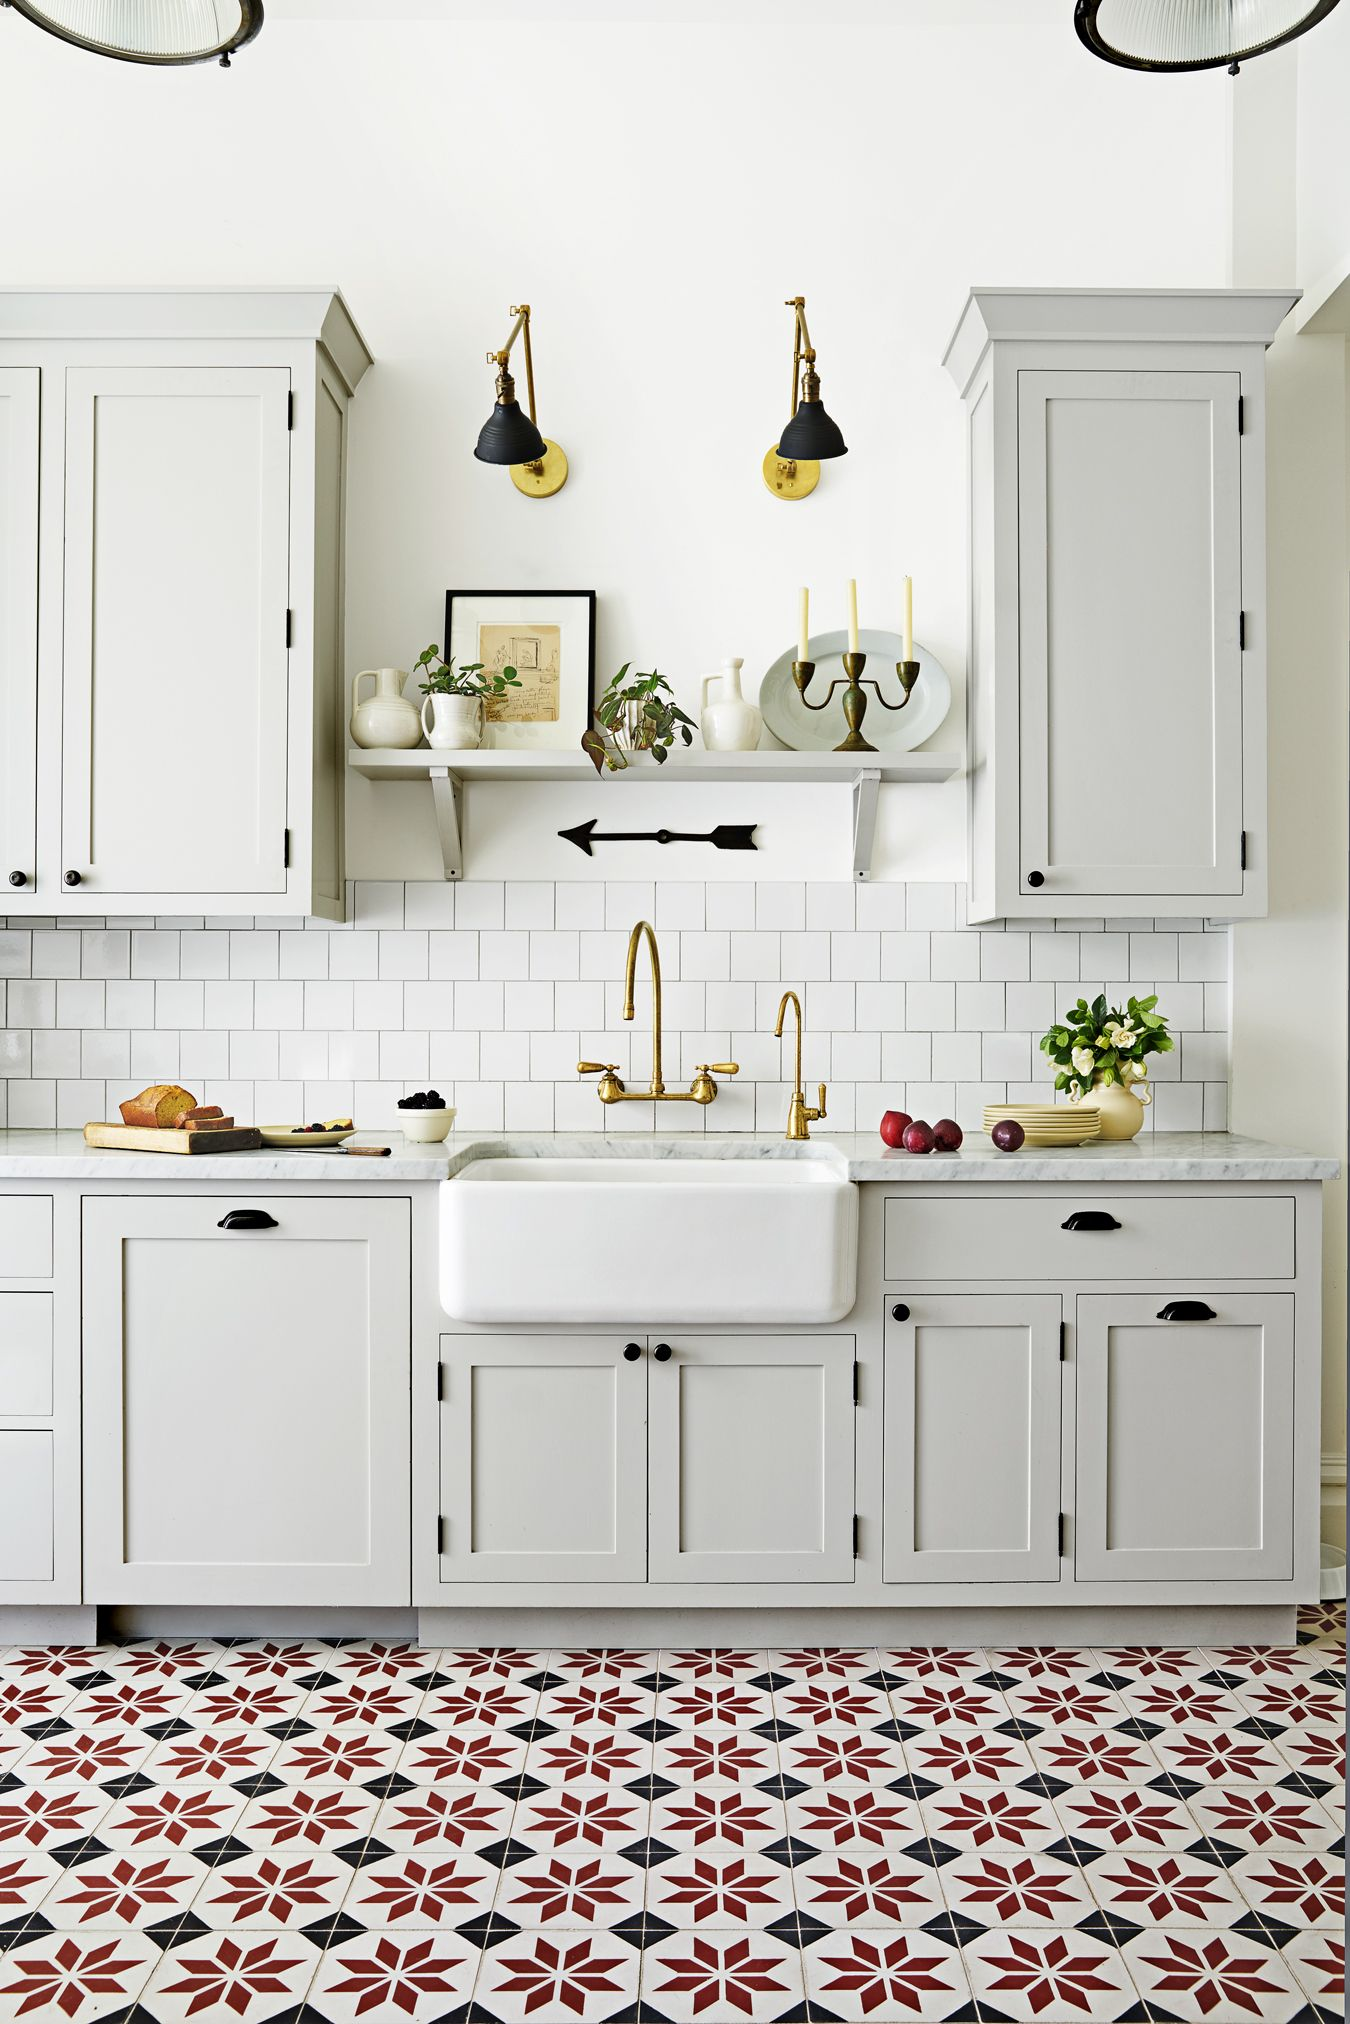 8 Gorgeous Kitchen Trends That Are Going to Be Huge in 2018 ...